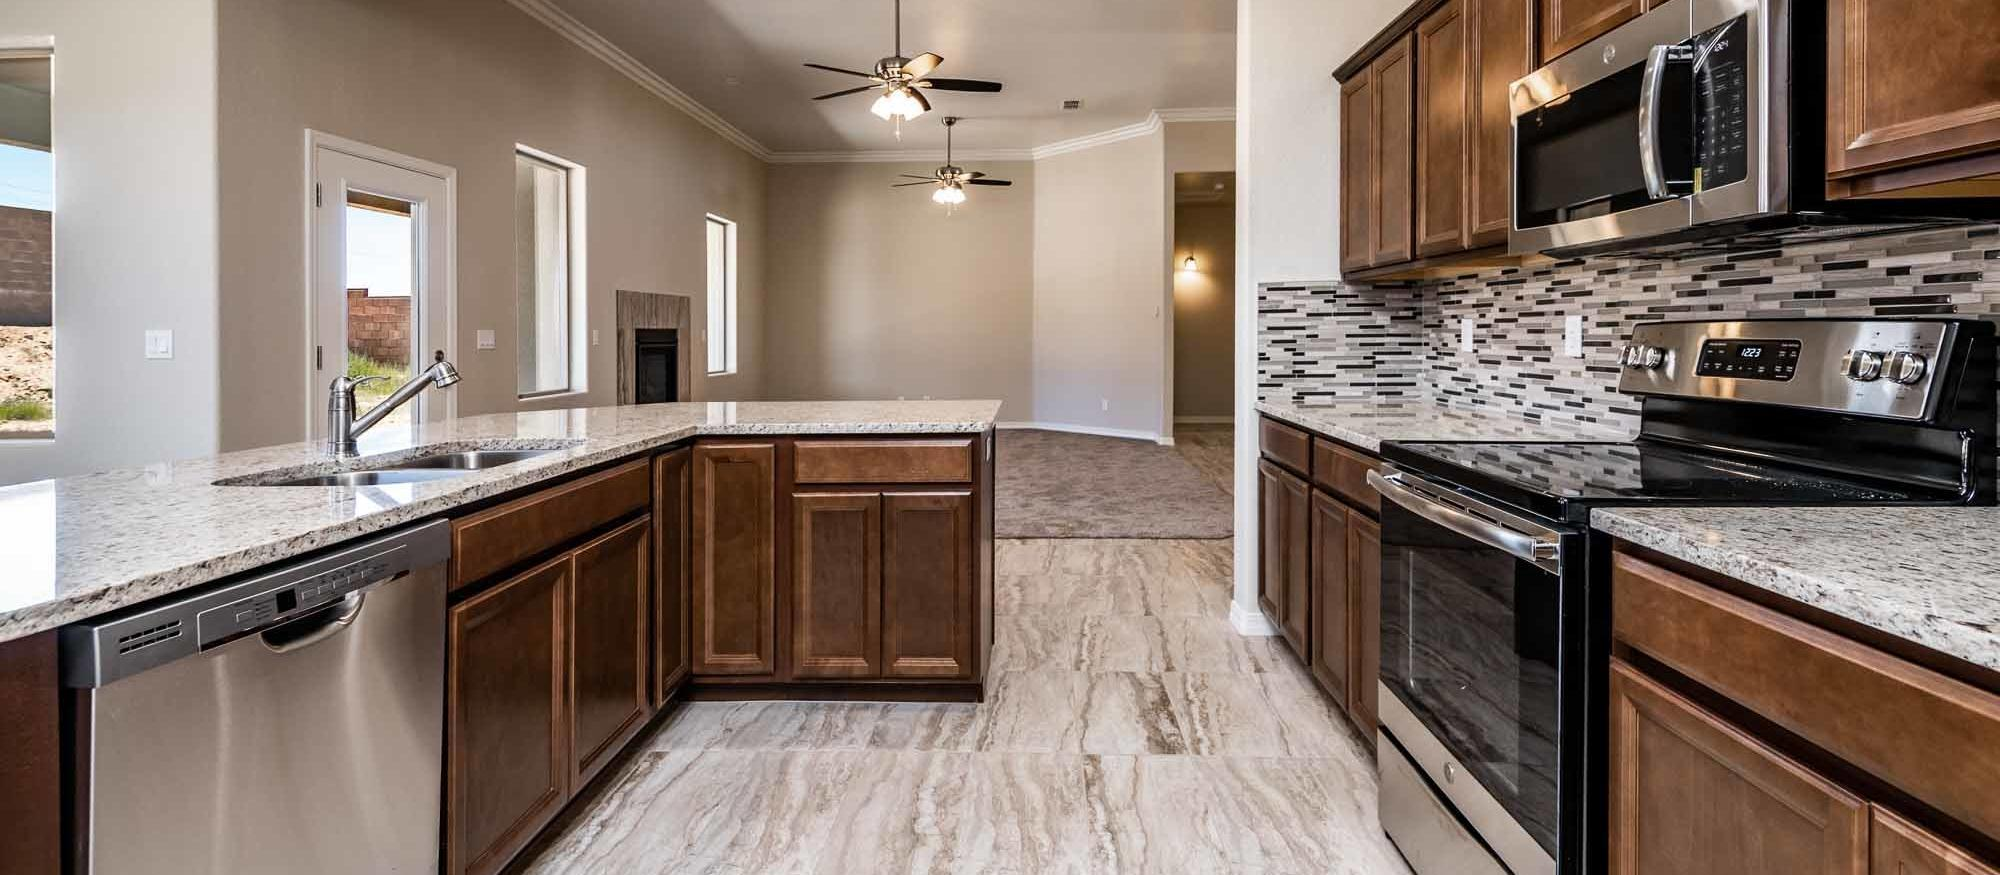 Kitchen featured in the Ocotillo 2084 By Angle Homes in Kingman-Lake Havasu City, AZ